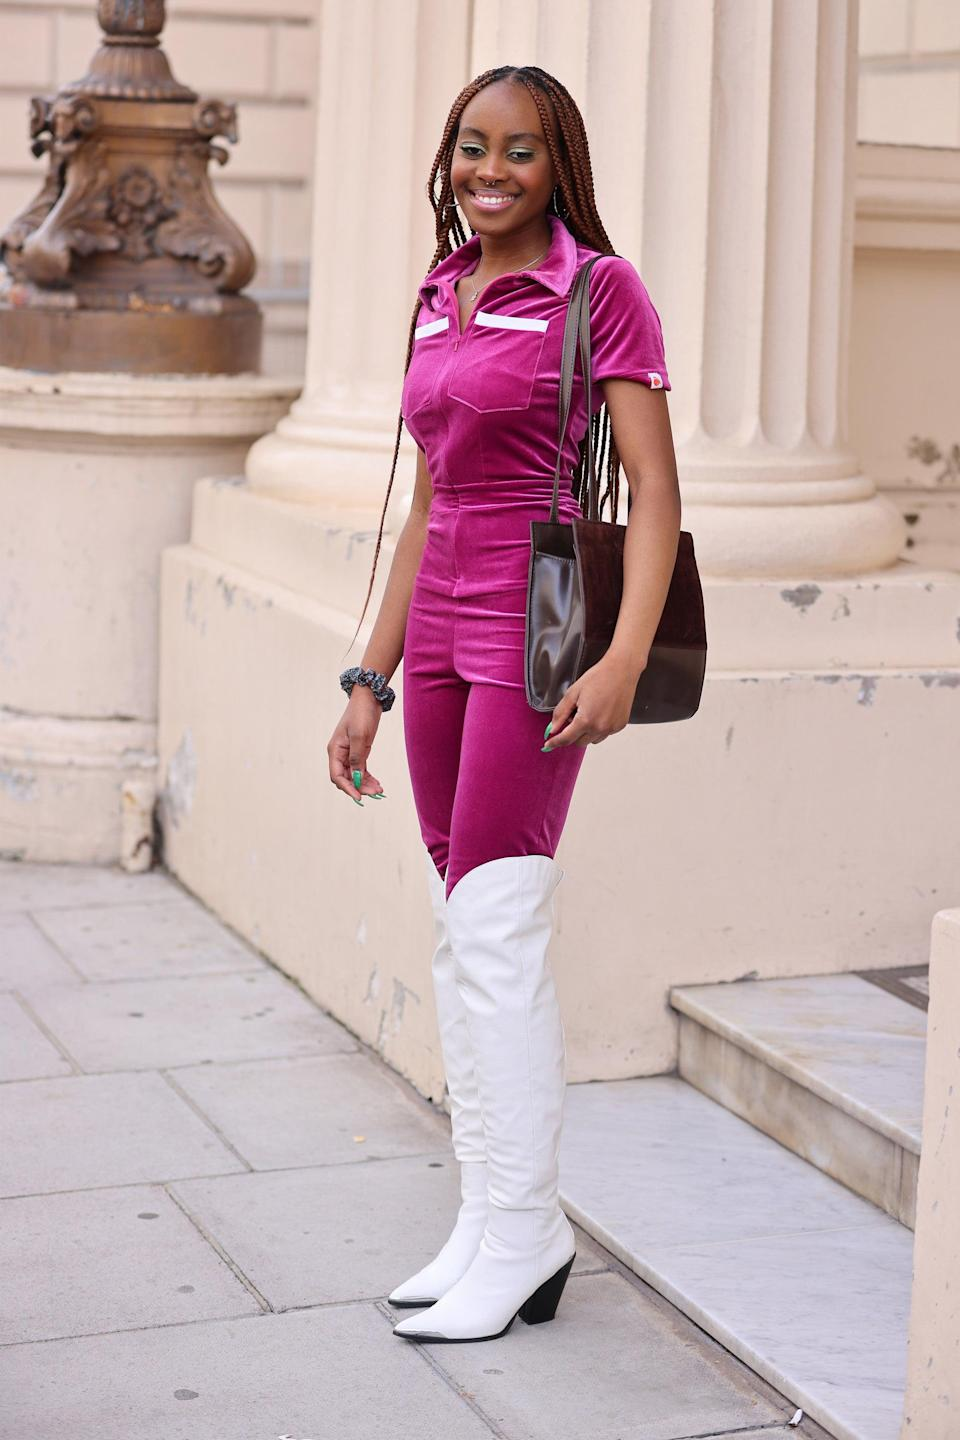 """We love this '60s in the '90s take on pink velour, with the added pop of a white <a href=""""https://www.refinery29.com/en-gb/knee-high-boot"""" rel=""""nofollow noopener"""" target=""""_blank"""" data-ylk=""""slk:thigh boot."""" class=""""link rapid-noclick-resp"""">thigh boot.</a> <a href=""""https://www.refinery29.com/en-gb/2021/07/10604330/dolly-parton-beauty-scent-from-heaven-fragrance"""" rel=""""nofollow noopener"""" target=""""_blank"""" data-ylk=""""slk:Dolly Parton"""" class=""""link rapid-noclick-resp"""">Dolly Parton</a> eat your heart out.<span class=""""copyright"""">Photo Courtesy of Neil Mockford/Getty Images.</span>"""